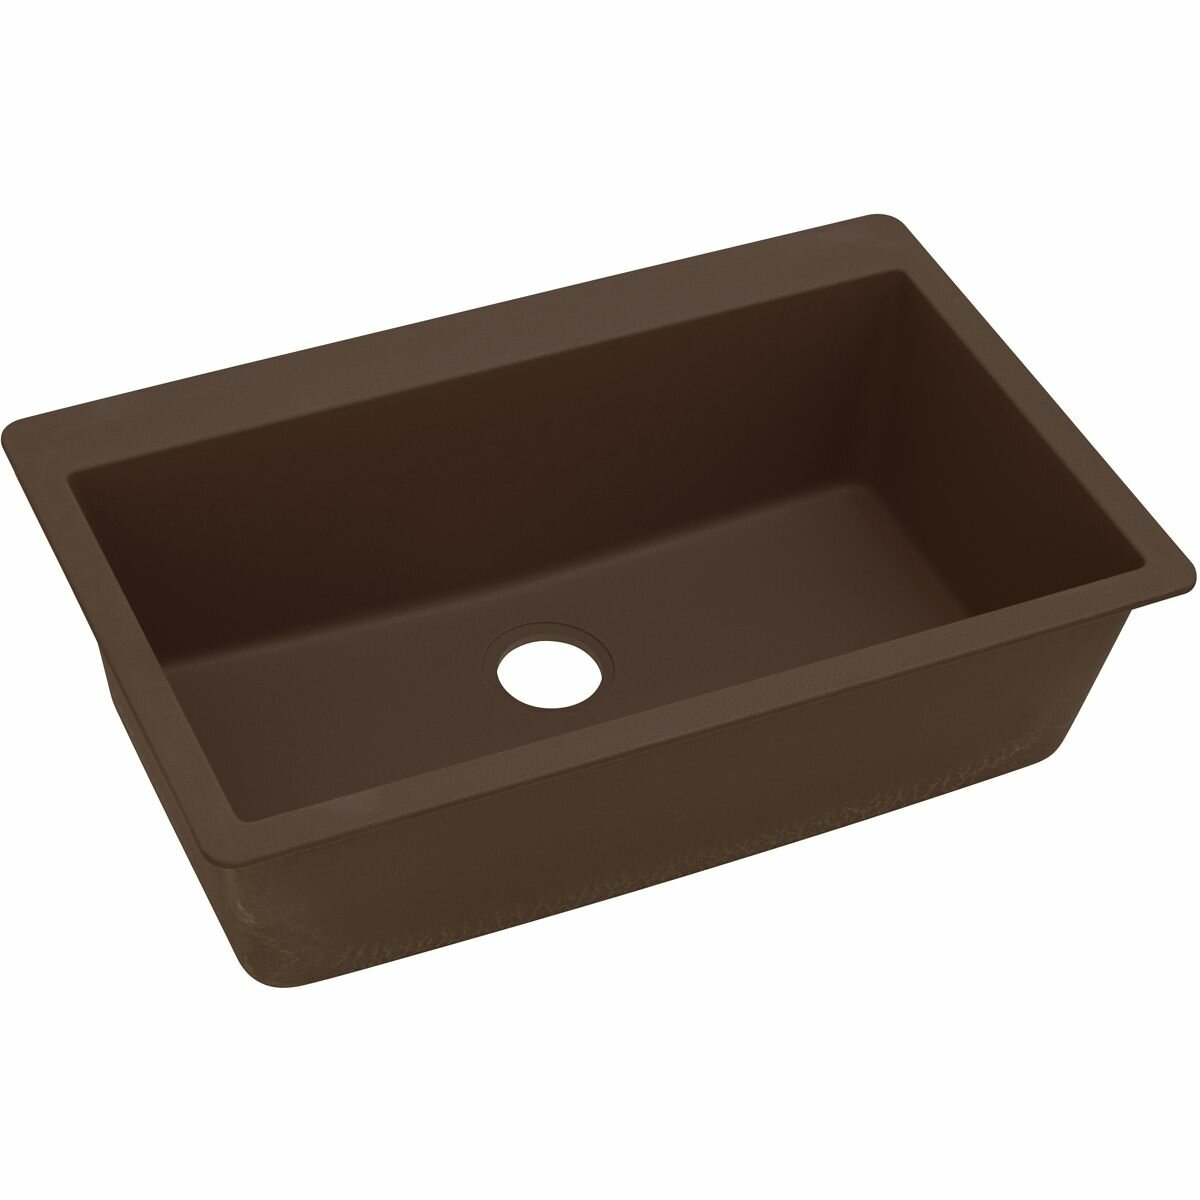 "Elkay Classic 33"" x 20 8"" Single Bowl Top Kitchen Sink"